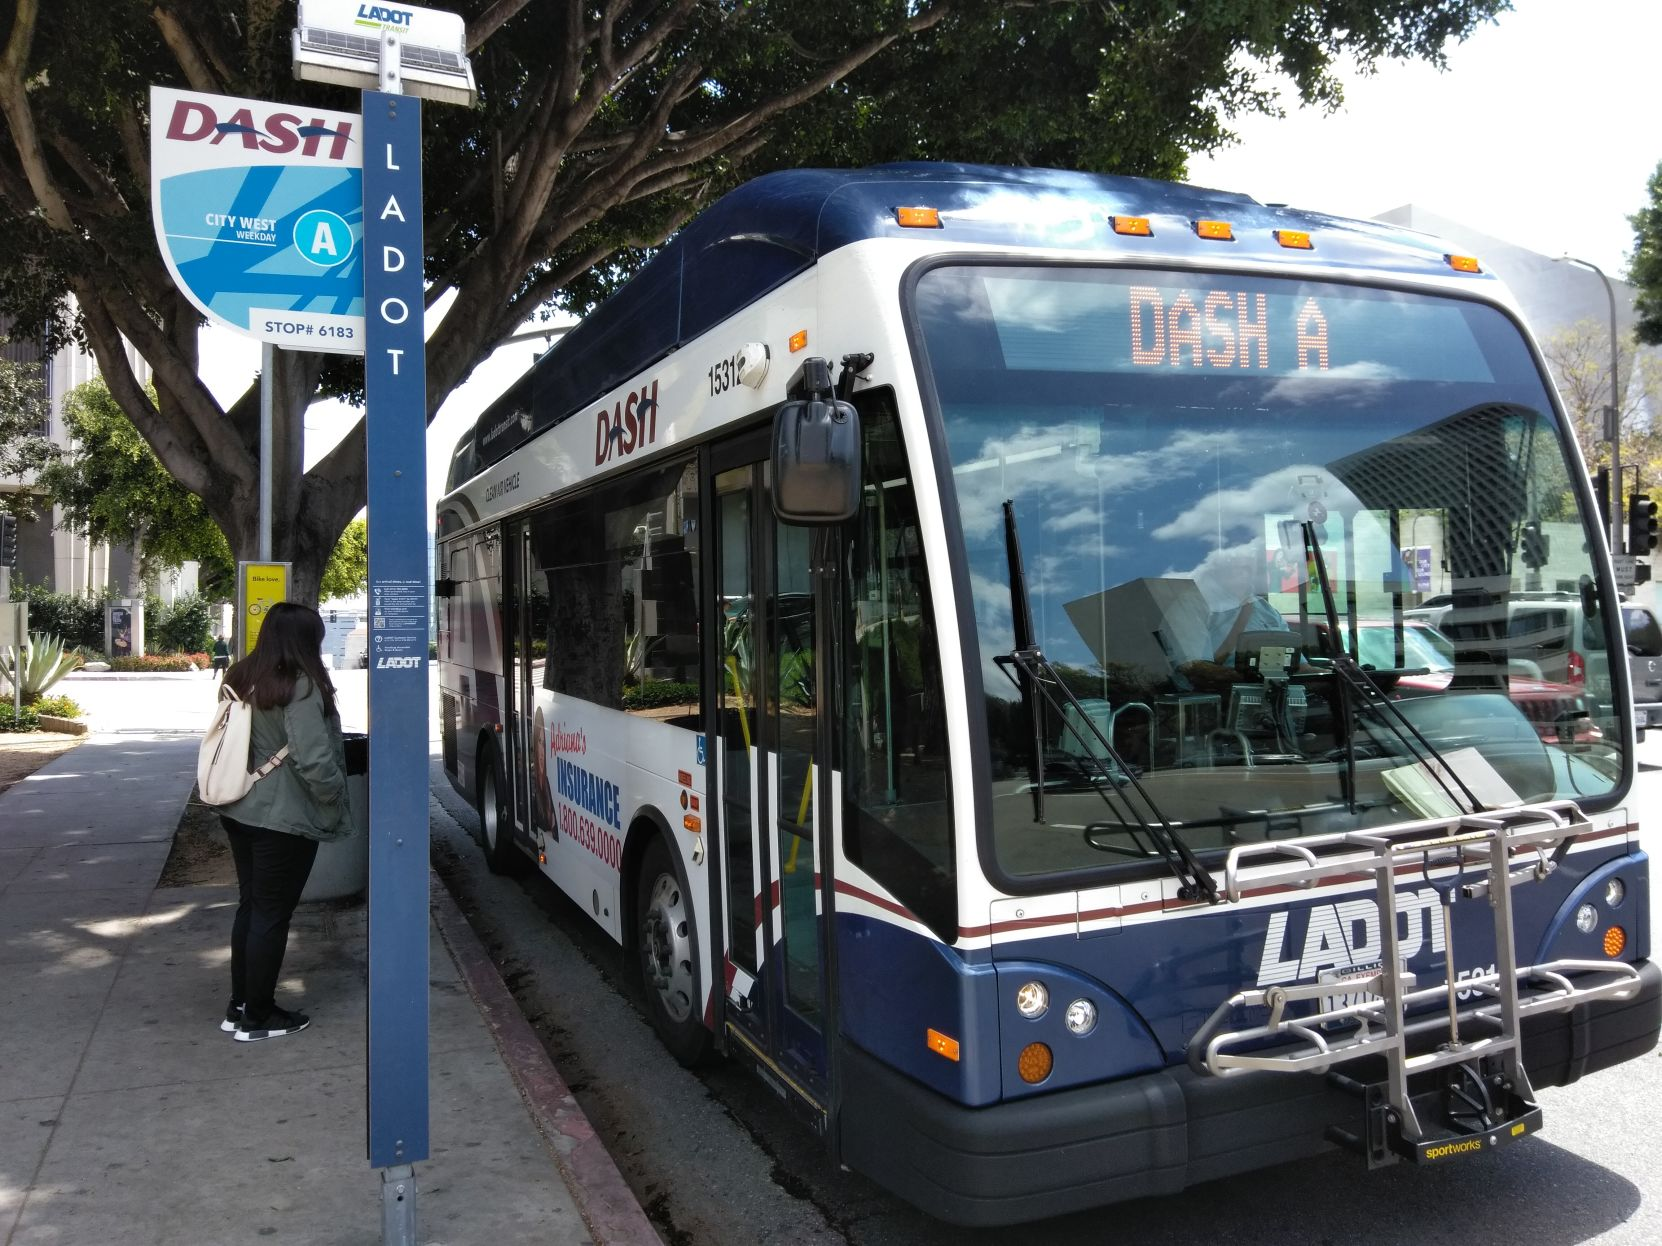 DASH Bus Service in Arts District to Expand | Los Angeles Downtown News